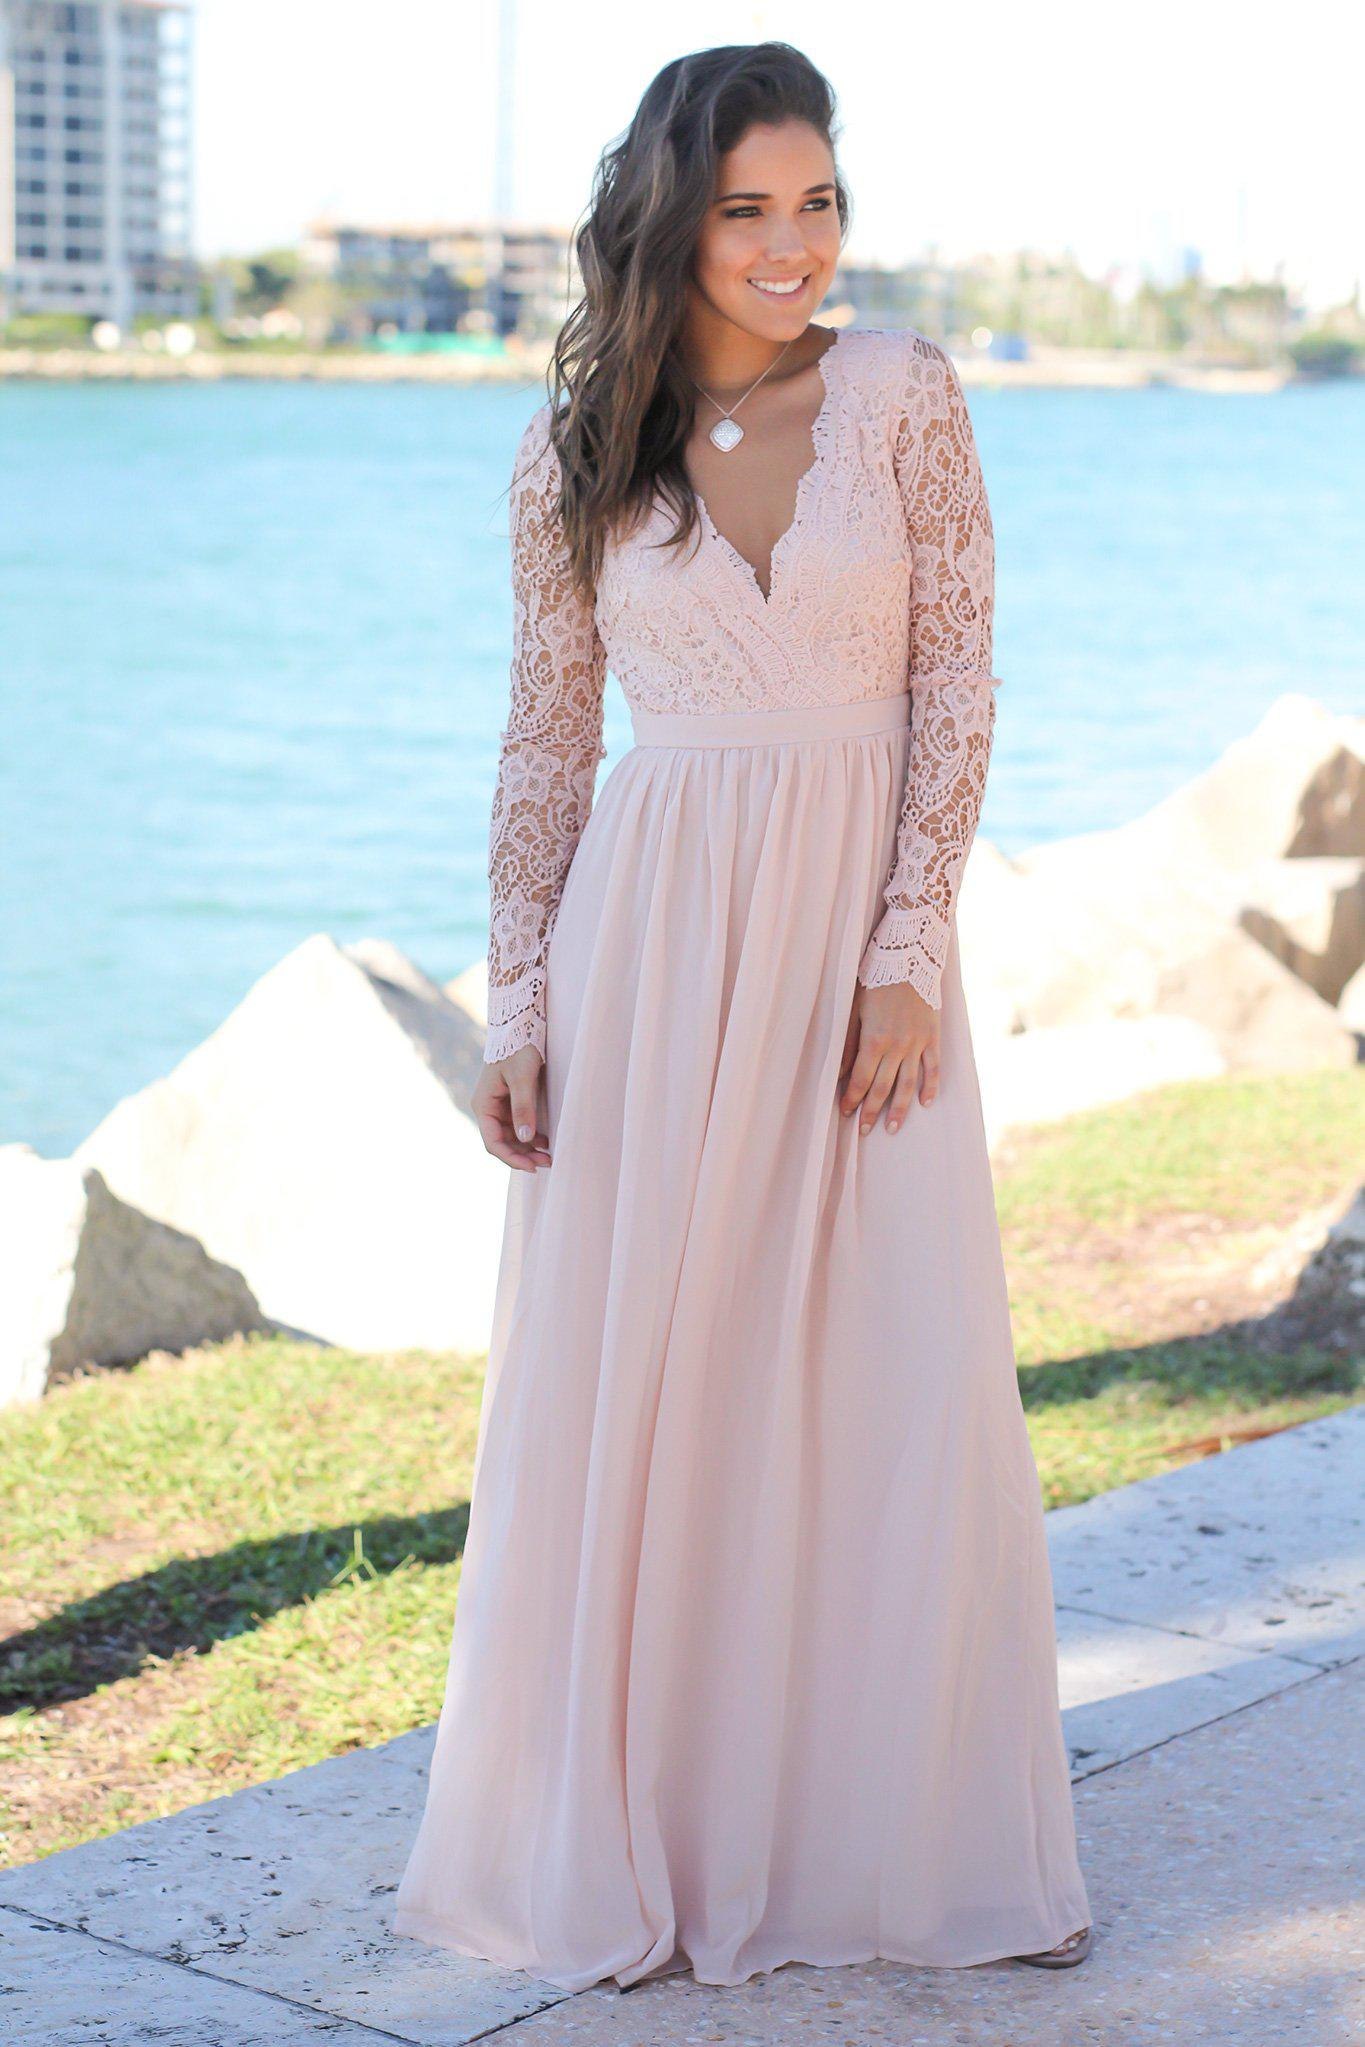 Blush crochet maxi dress with open back and long sleeves blush crochet maxi dress with open back and long sleeves bridesmaid dresses ombrellifo Image collections